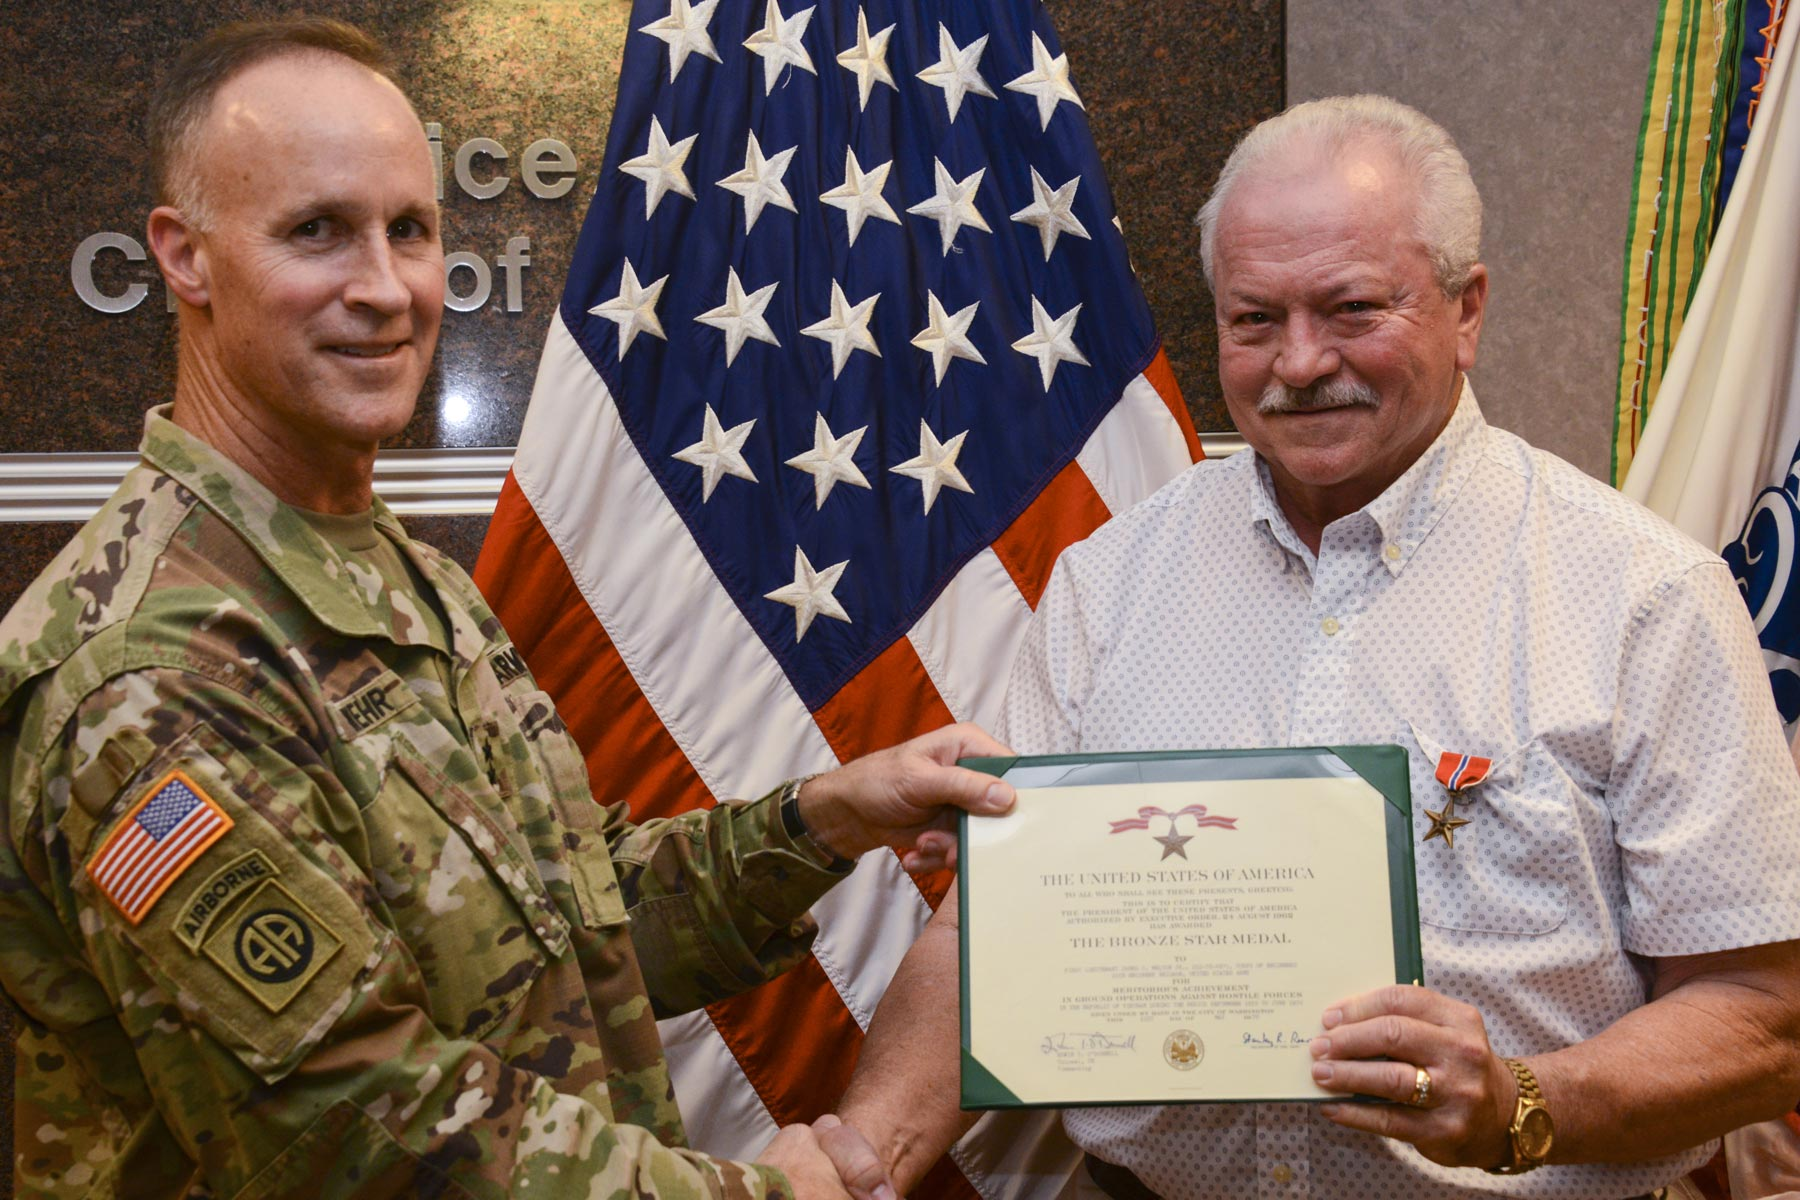 Vietnam Veteran Is Finally Presented Bronze Star Medal